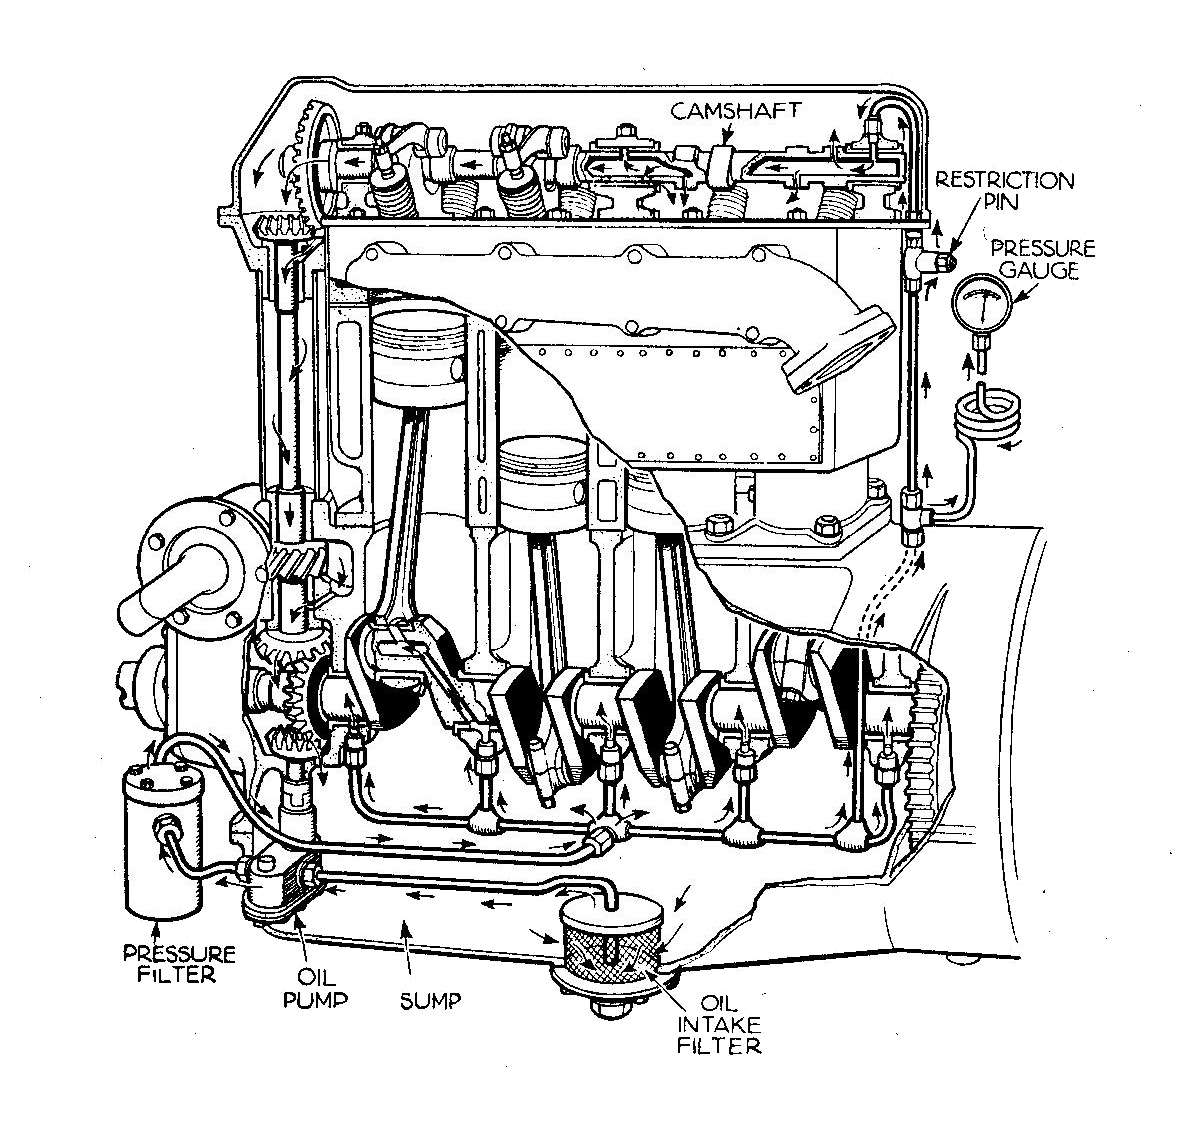 1968 Ford F100 Wiring Diagram Depict moreover 30   Twist Lock Plug Wiring Diagram likewise Evinrude Tachometer Wiring Diagram besides Battery Isolator Wiring Diagram as well 586074 Need Engine Wireing Diagram For Omc. on marine ignition switch diagram